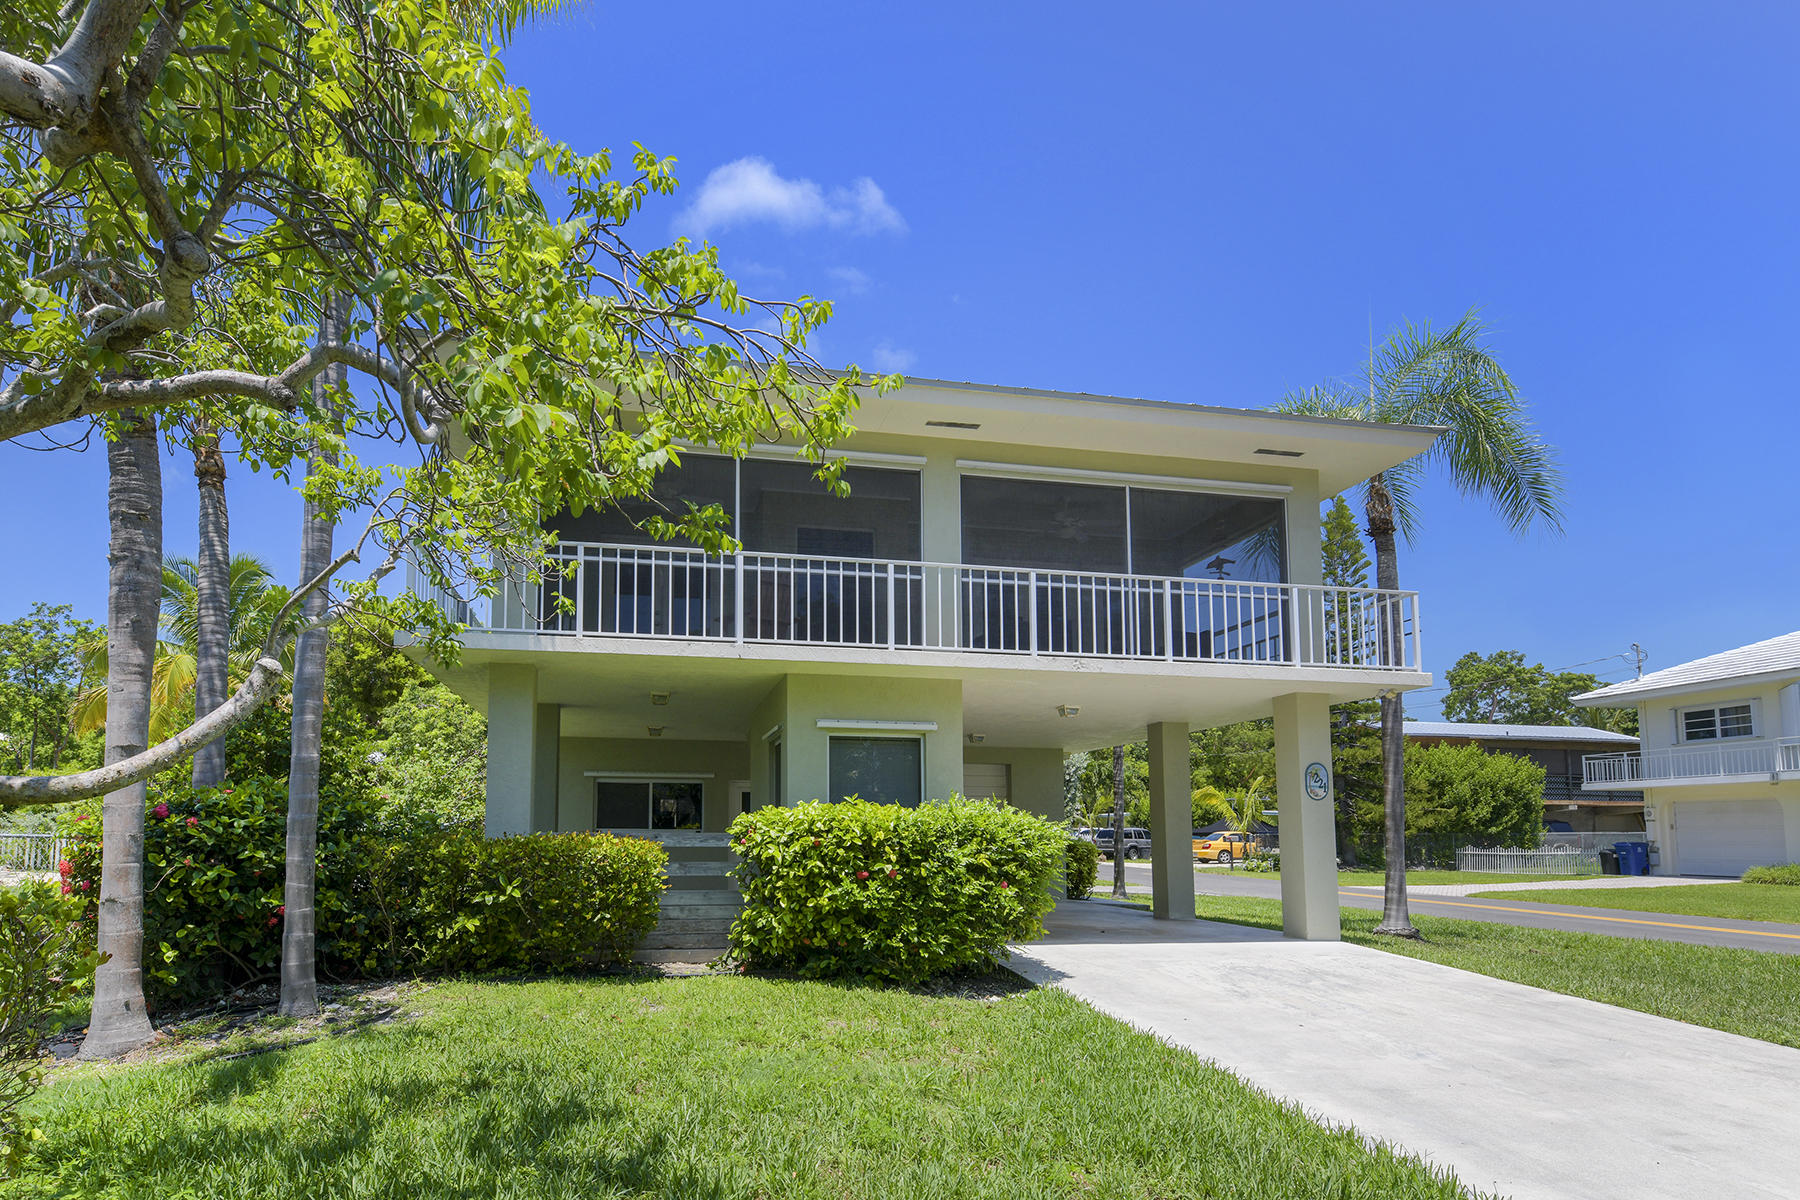 Single Family Homes for Sale at 221 Tarpon Street, Tavernier, FL 221 Tarpon Street Tavernier, Florida 33070 United States